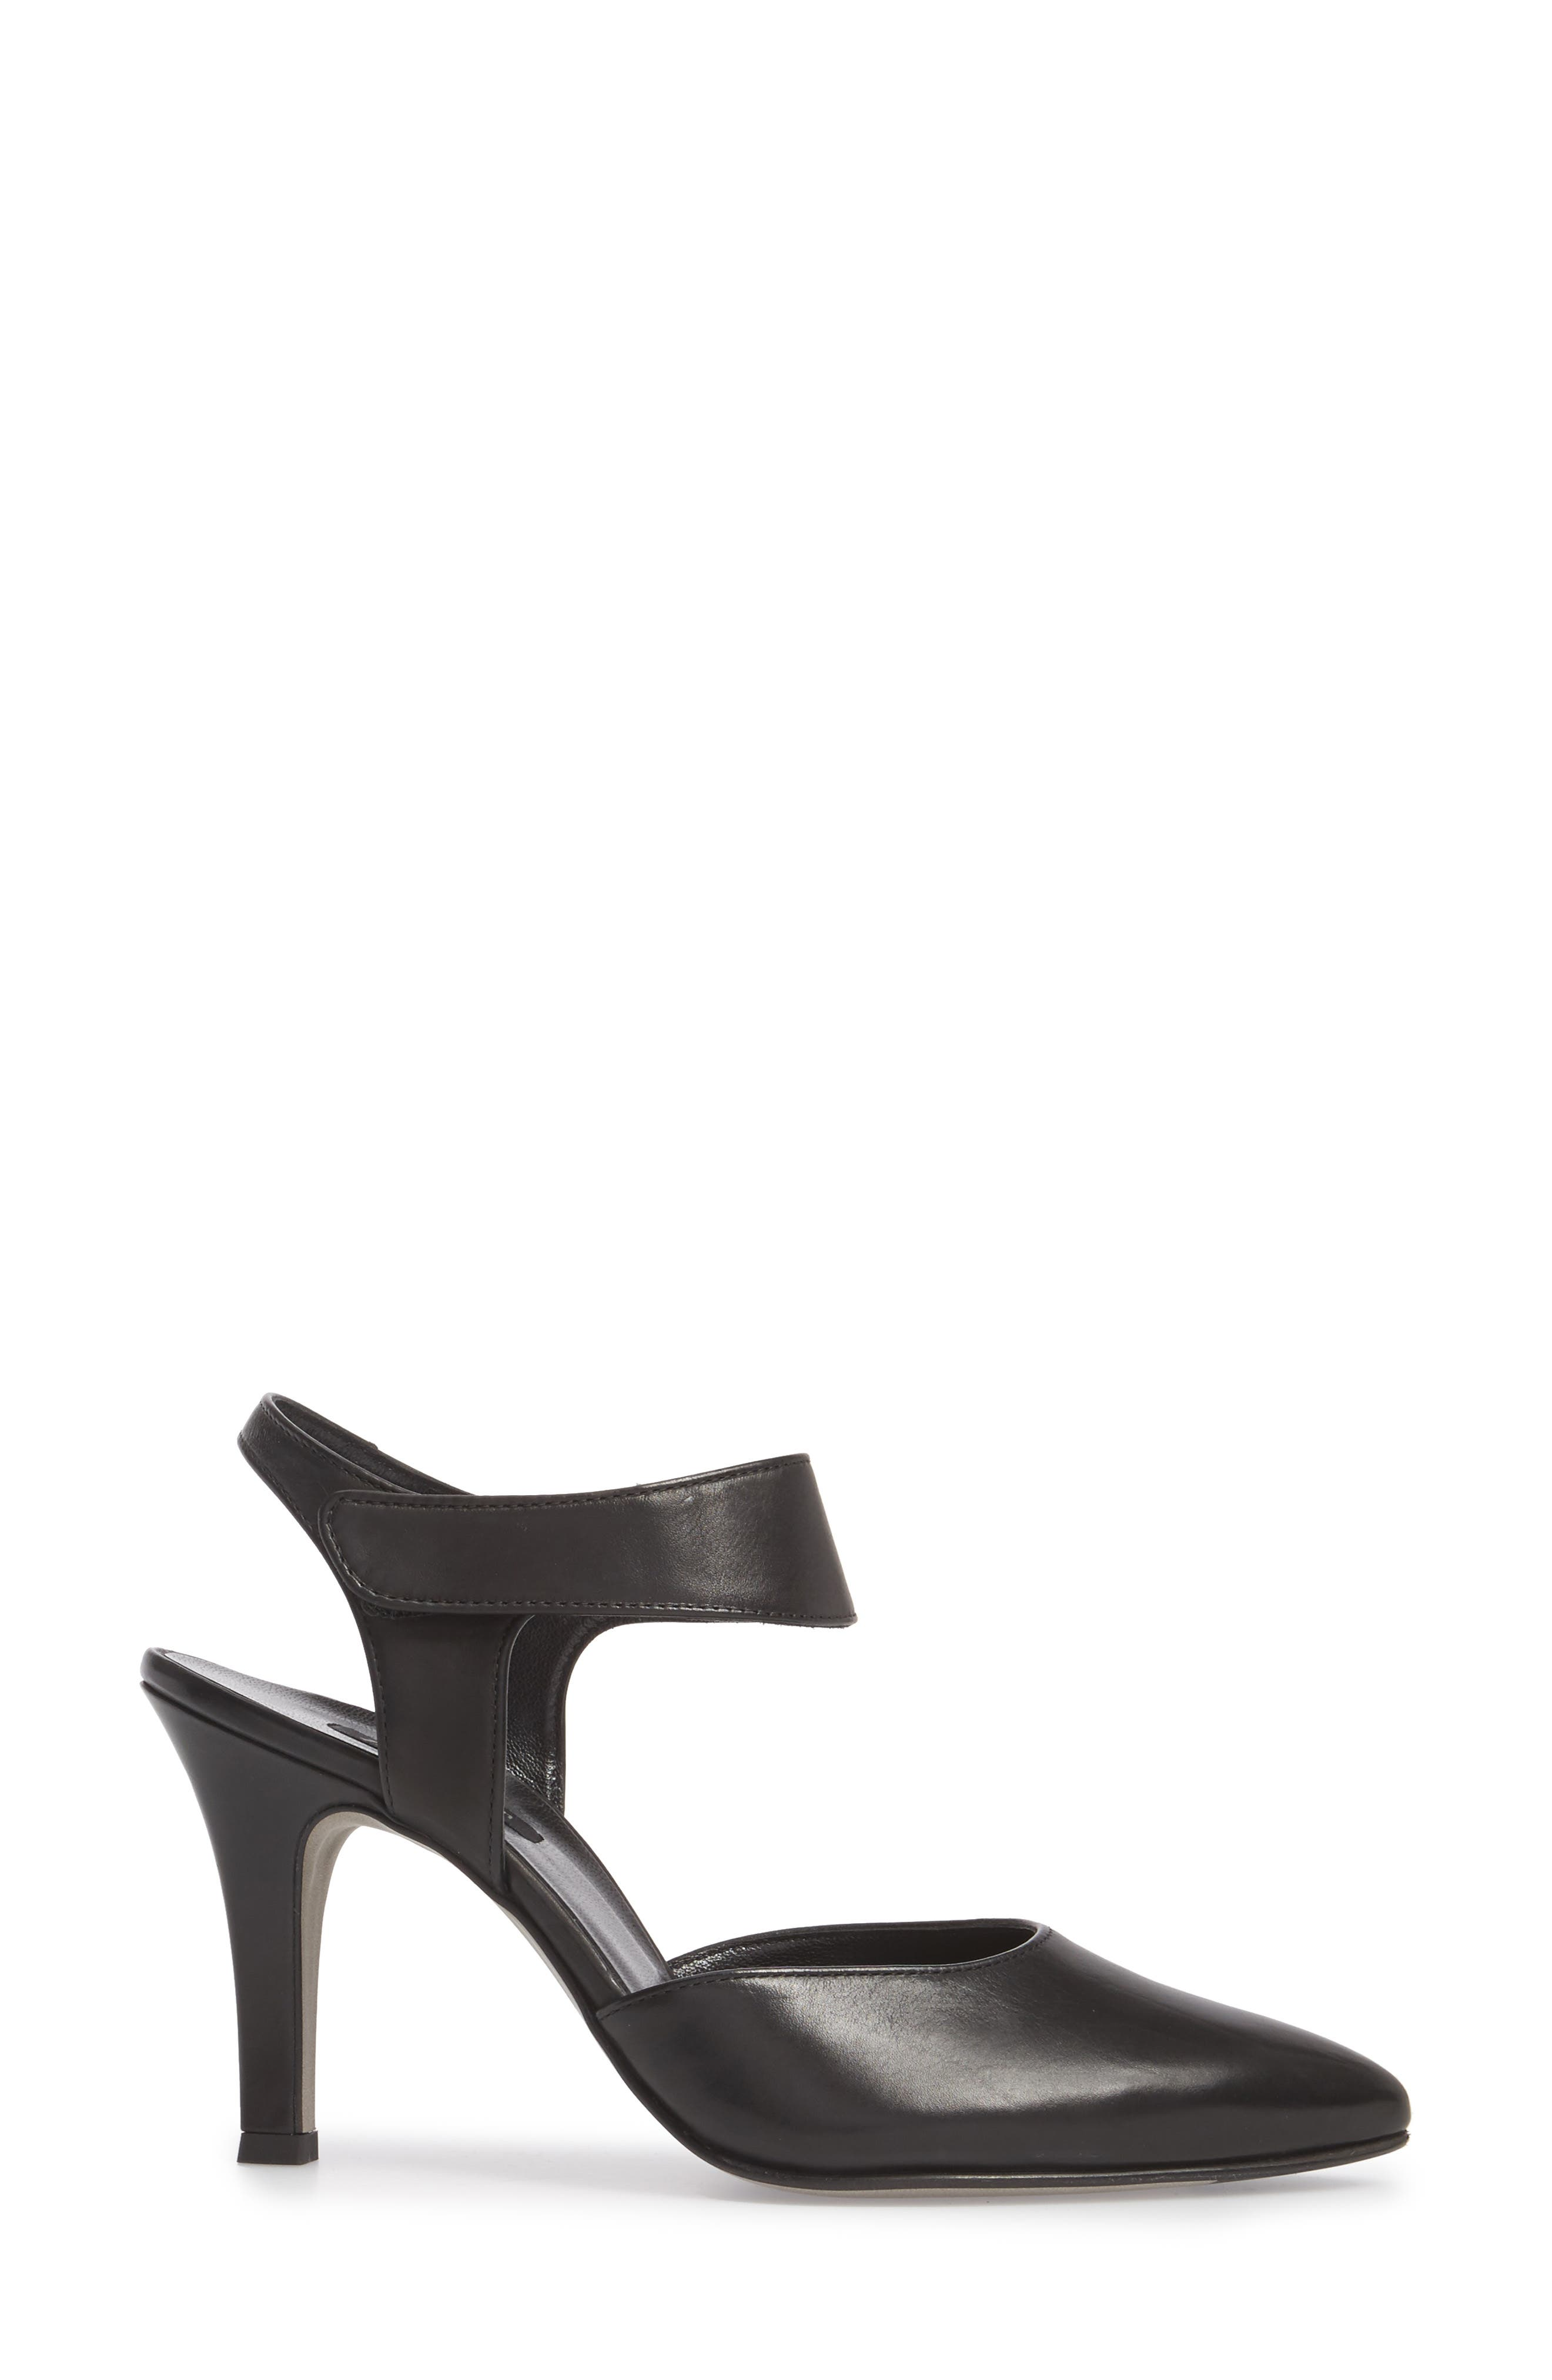 Nicolette Pointy Toe Pump,                             Alternate thumbnail 3, color,                             BLACK LEATHER